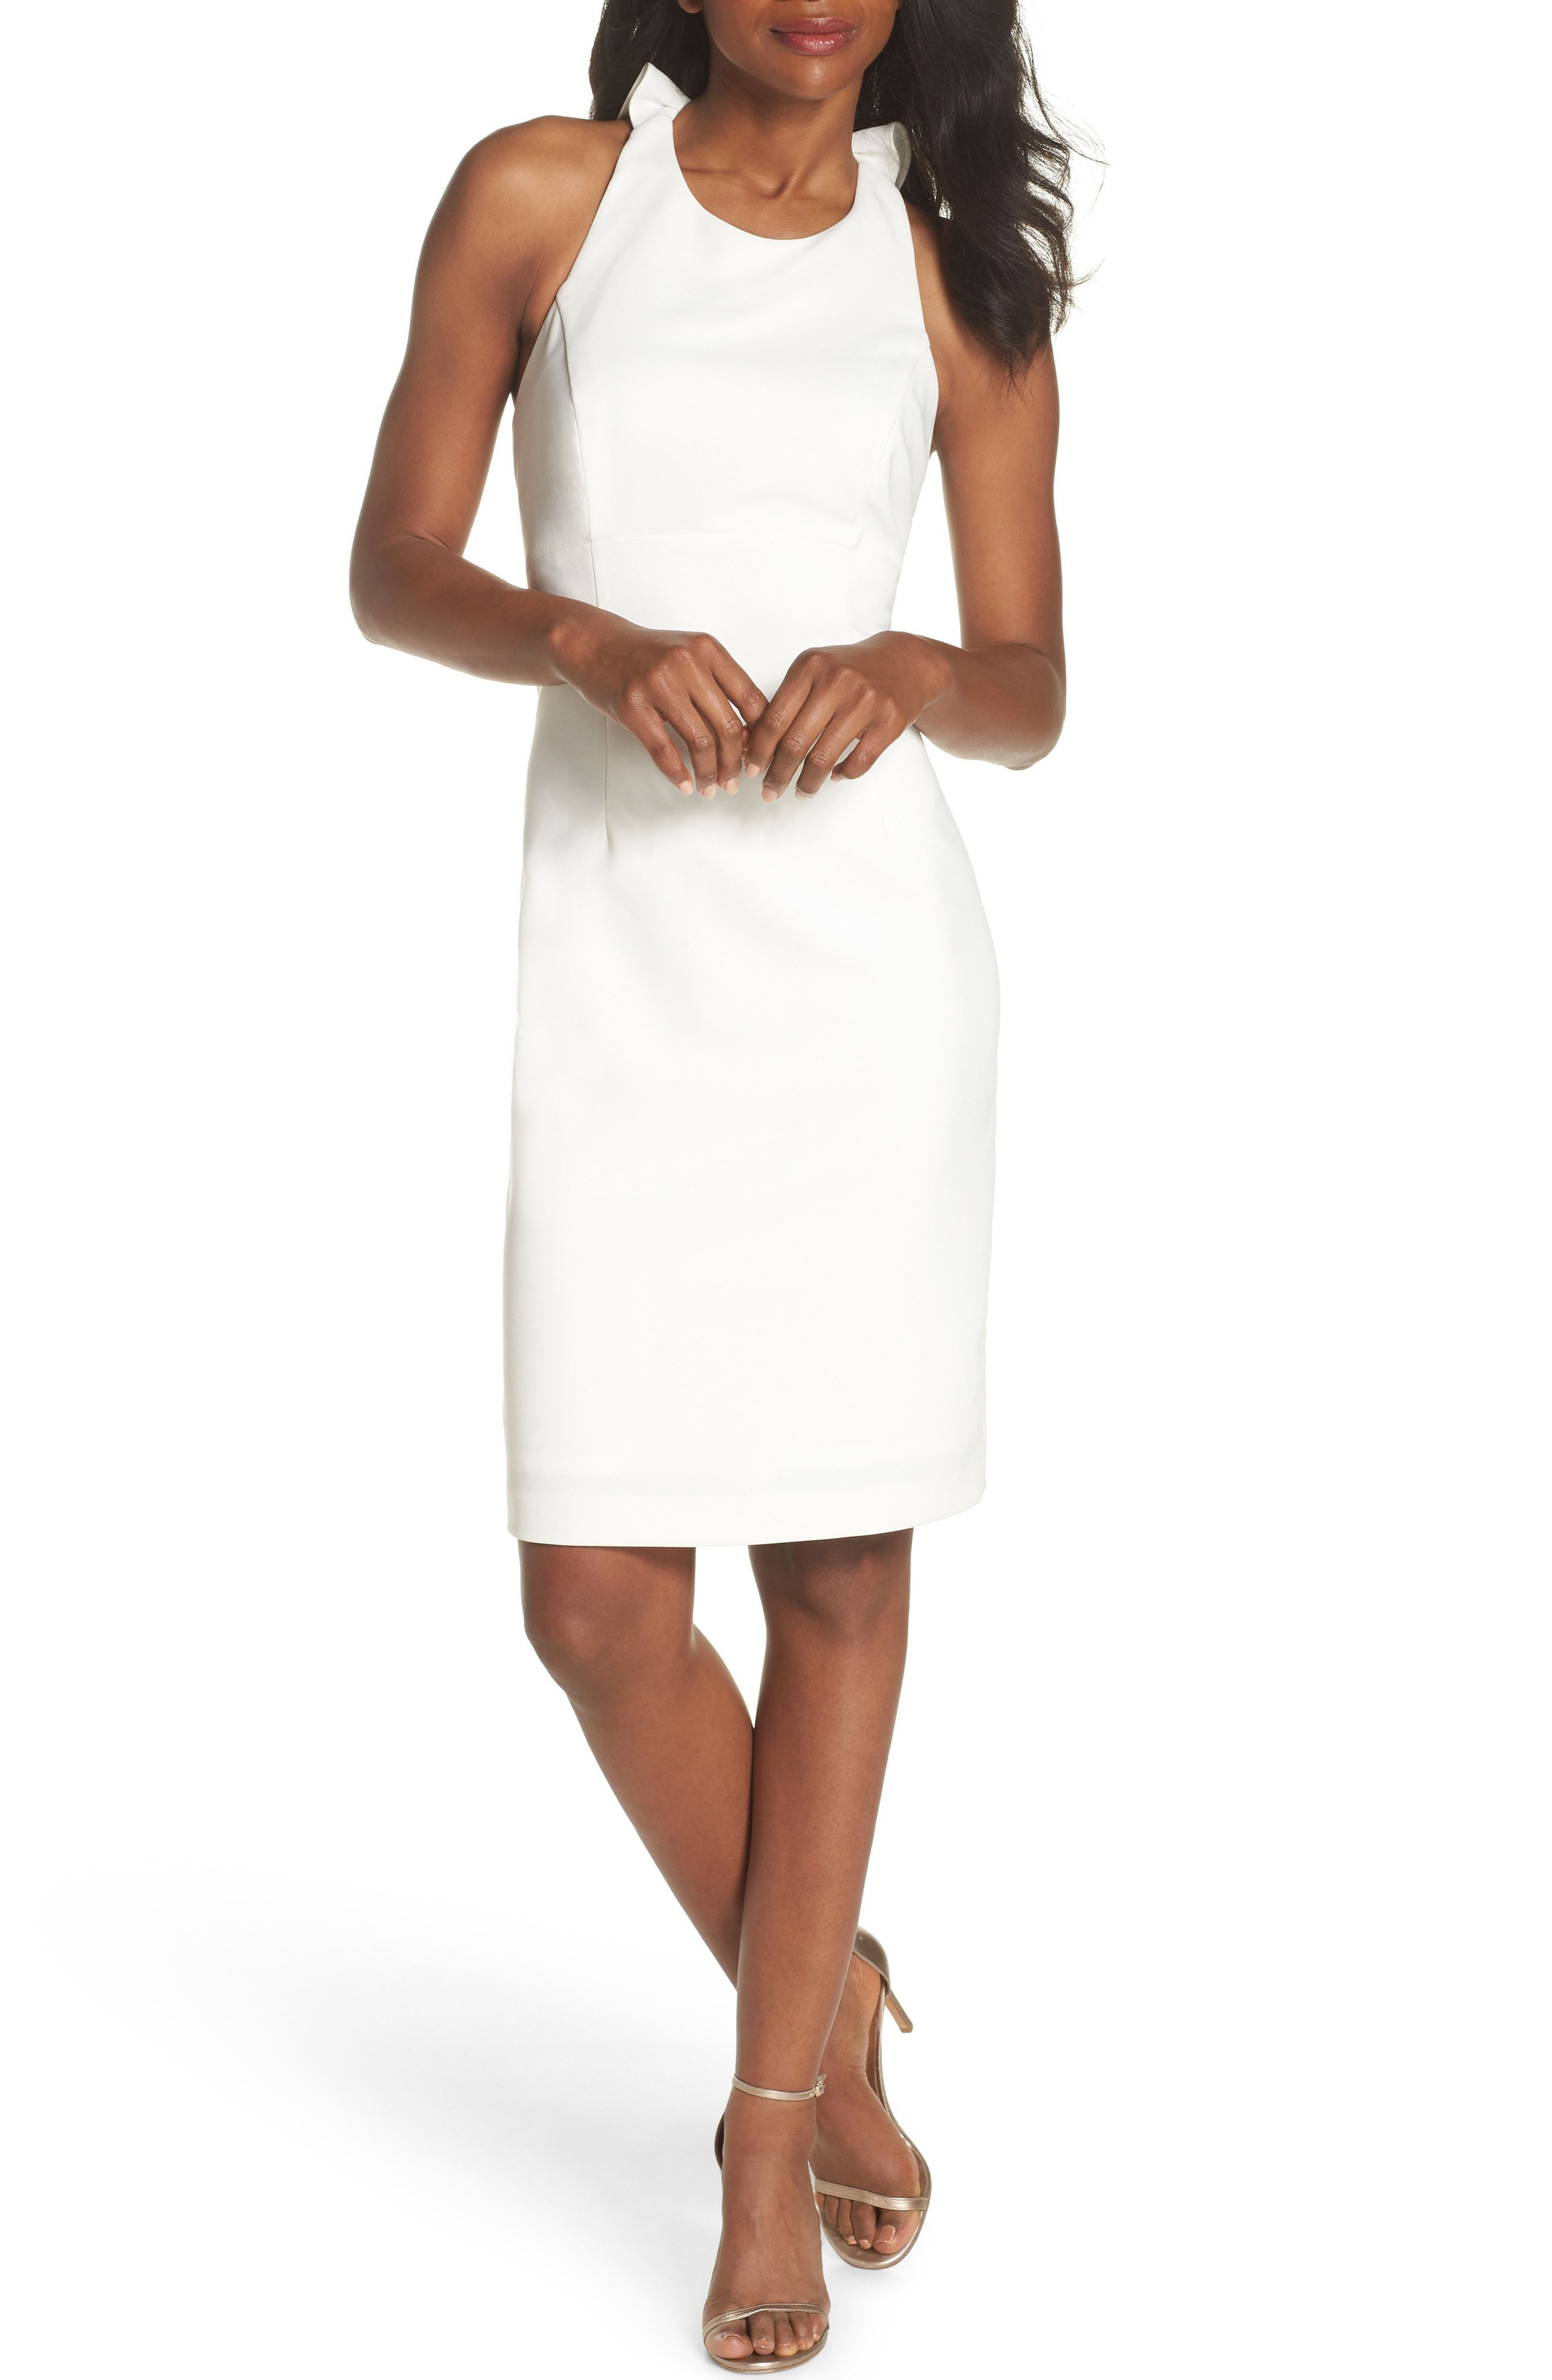 f6bb5dc349a Chic Vince Camuto Sleeveless Ruffle Back Sheath Dress online.   188   perfectdresses from top